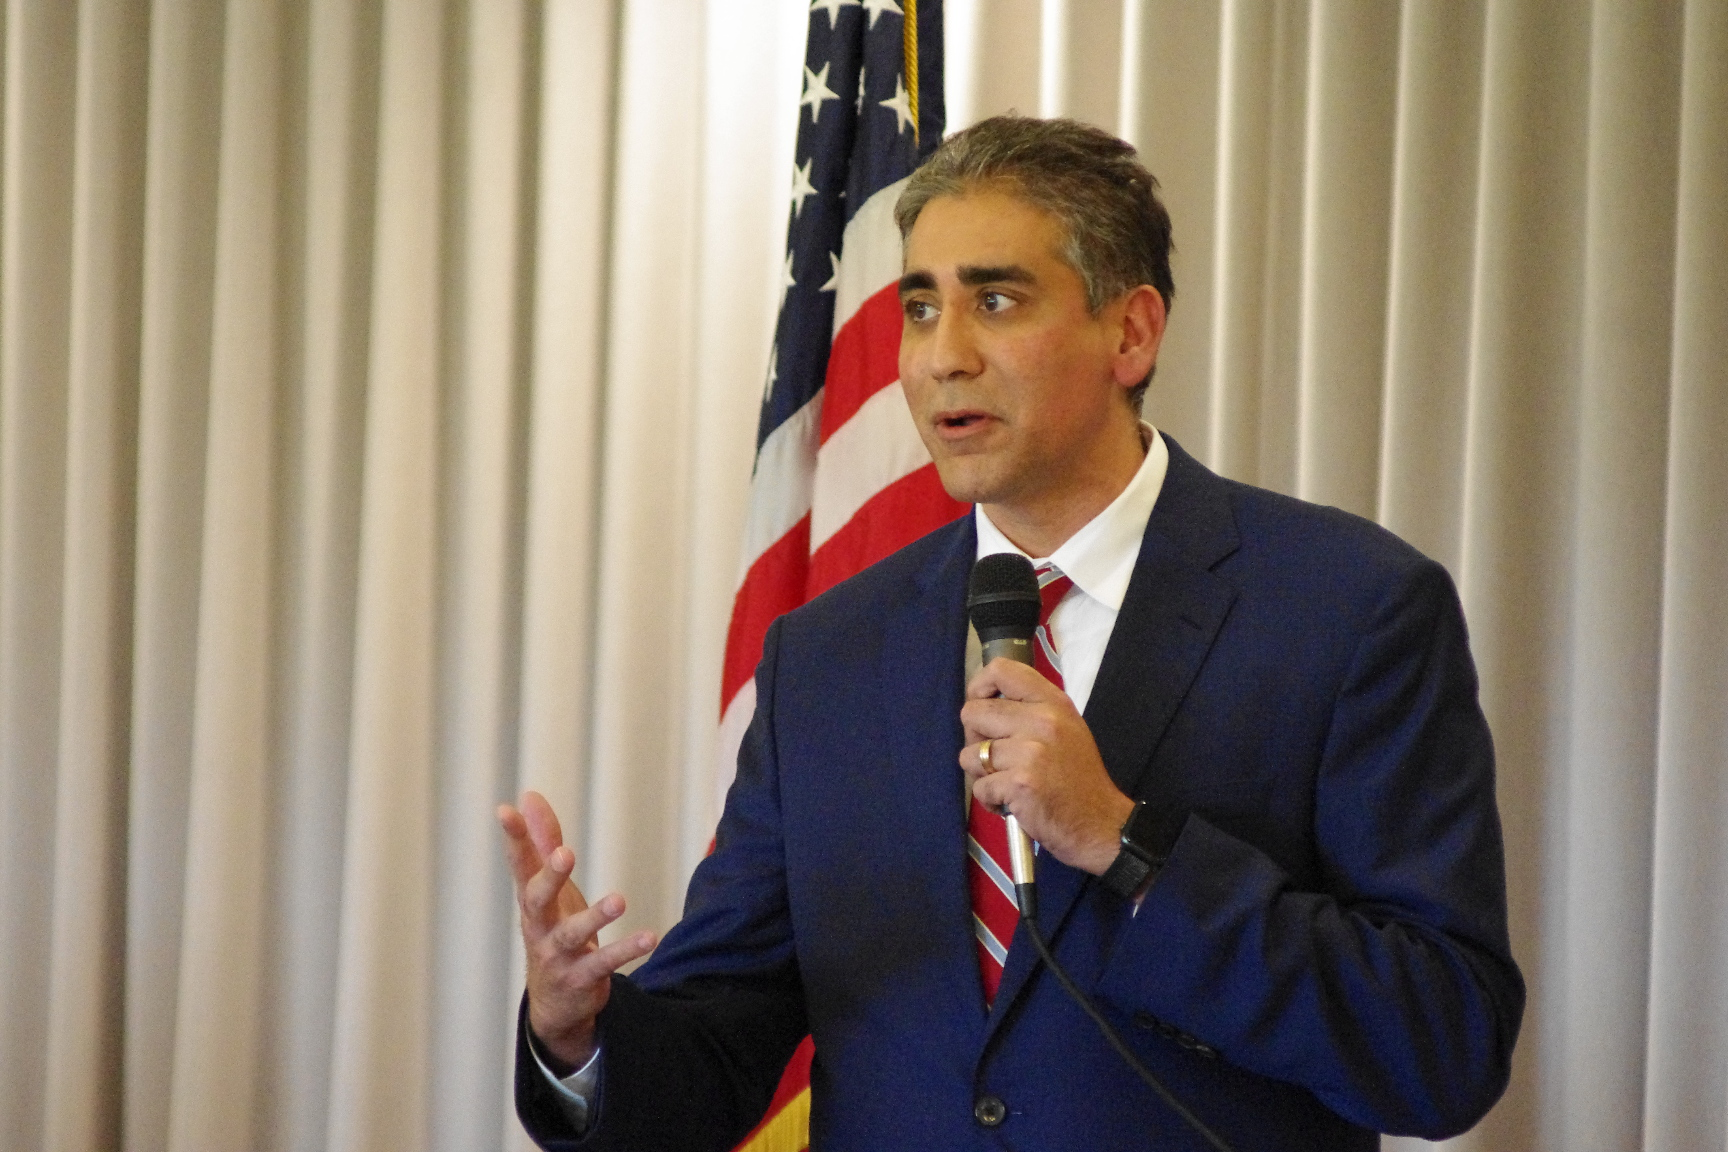 'The problem is not our guns, the problem is our phones' says Republican U.S. Senate hopeful Manny Sethi